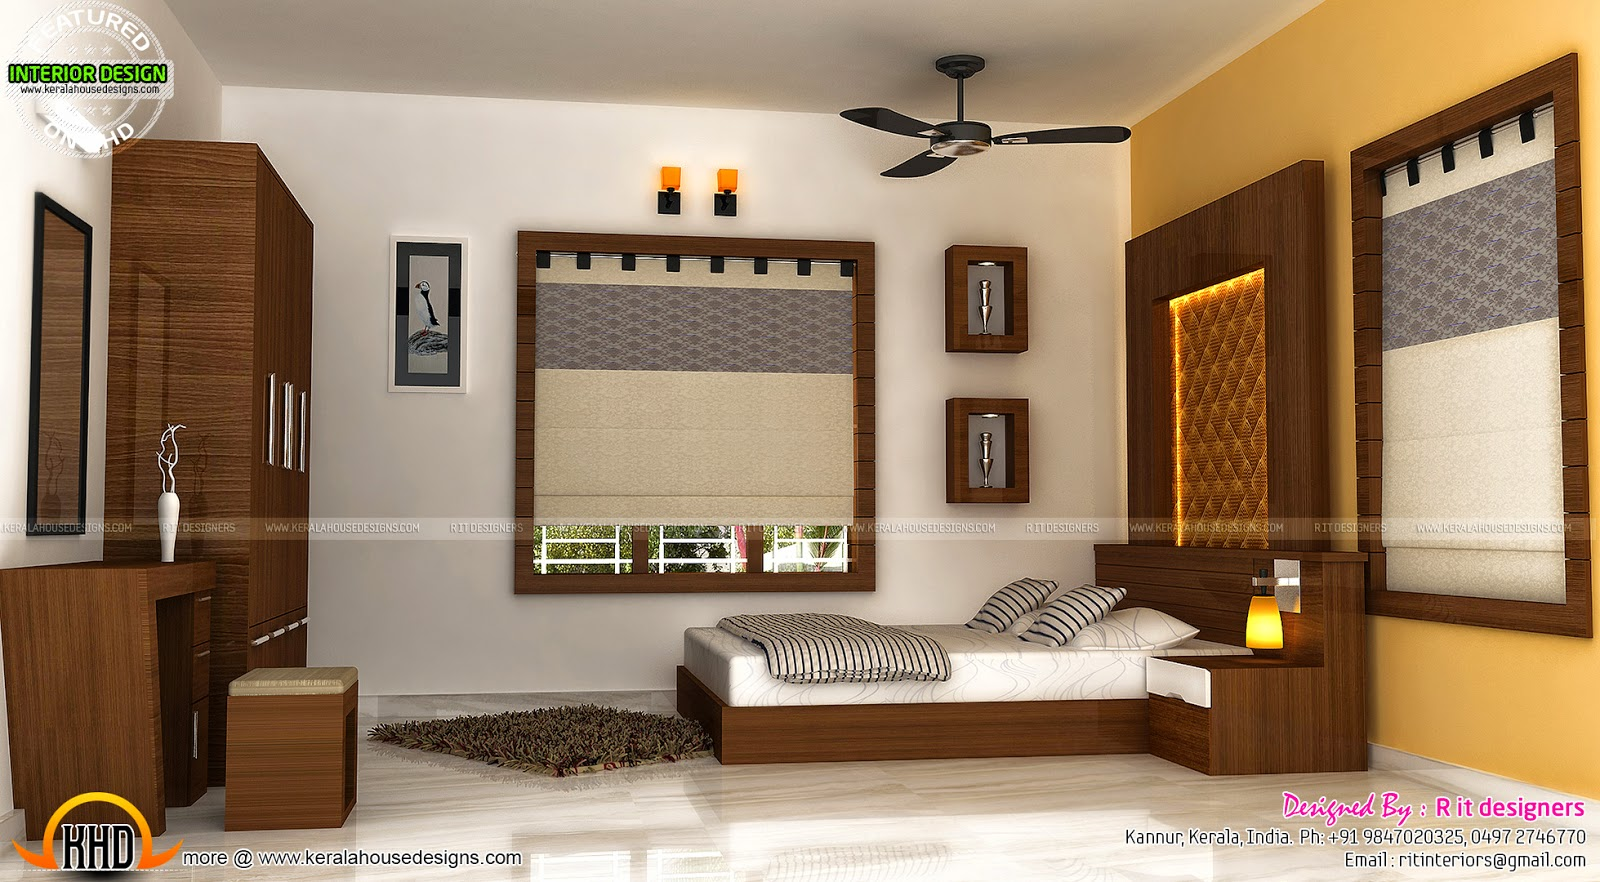 Staircase bedroom dining interiors kerala home design for Interior design your home